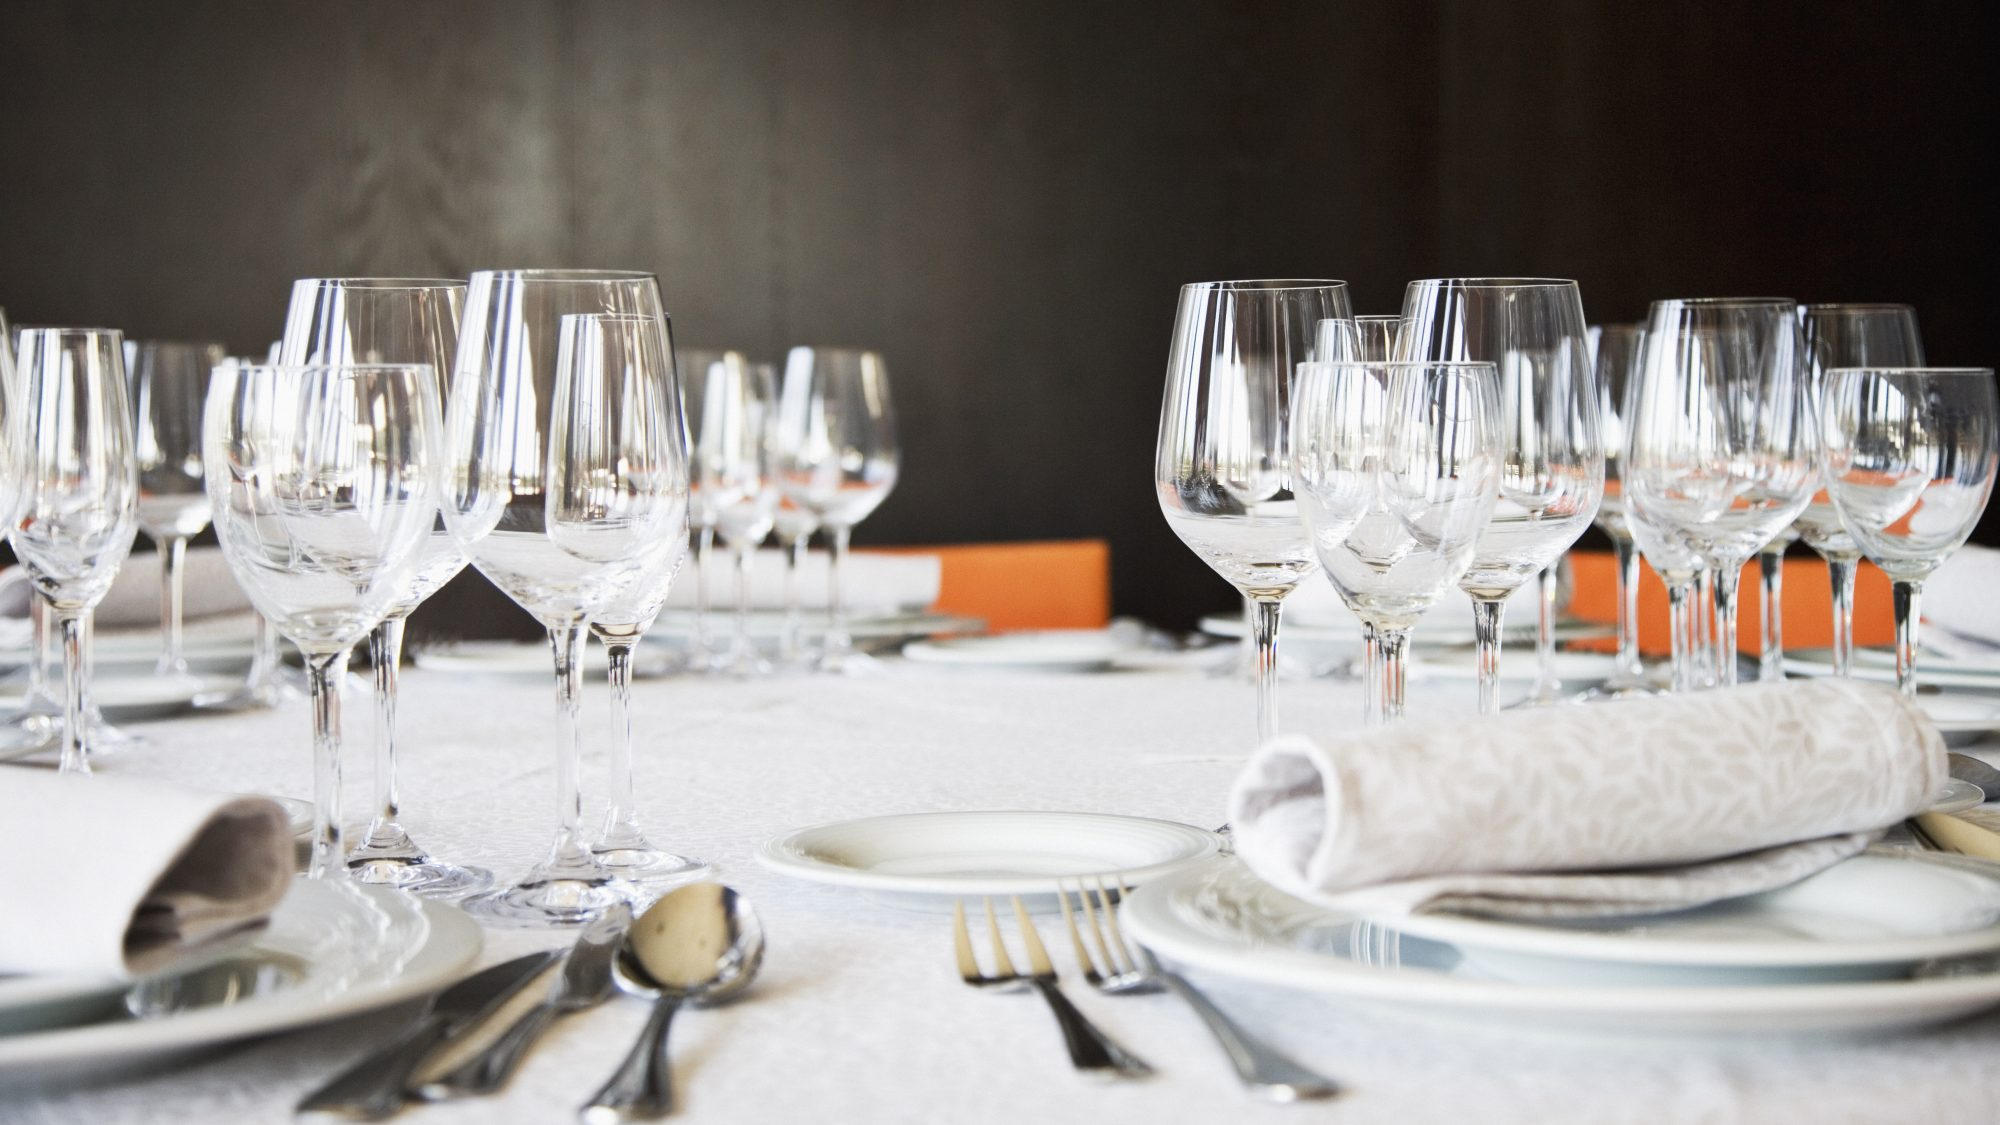 6 Fancy Restaurant Rules You Can Forget About | Food & Wine